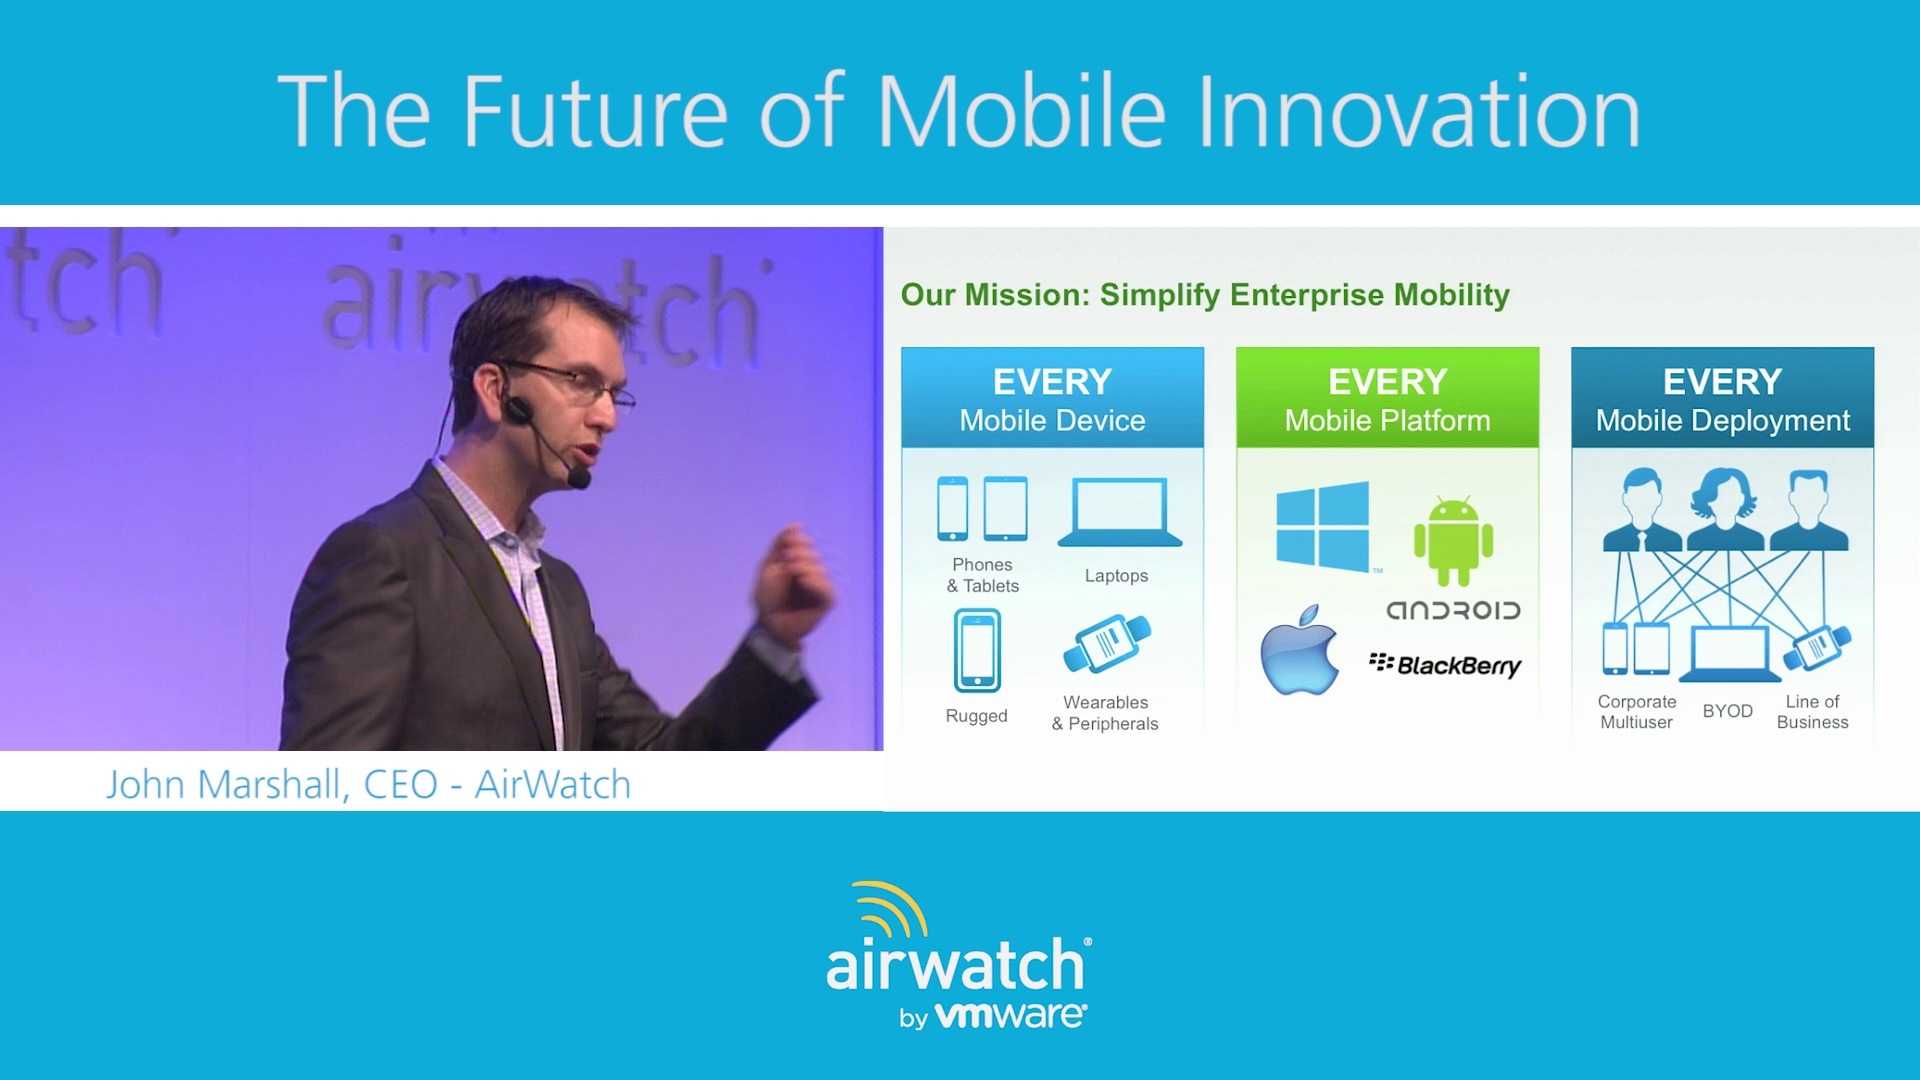 The Future of Mobile Innovation